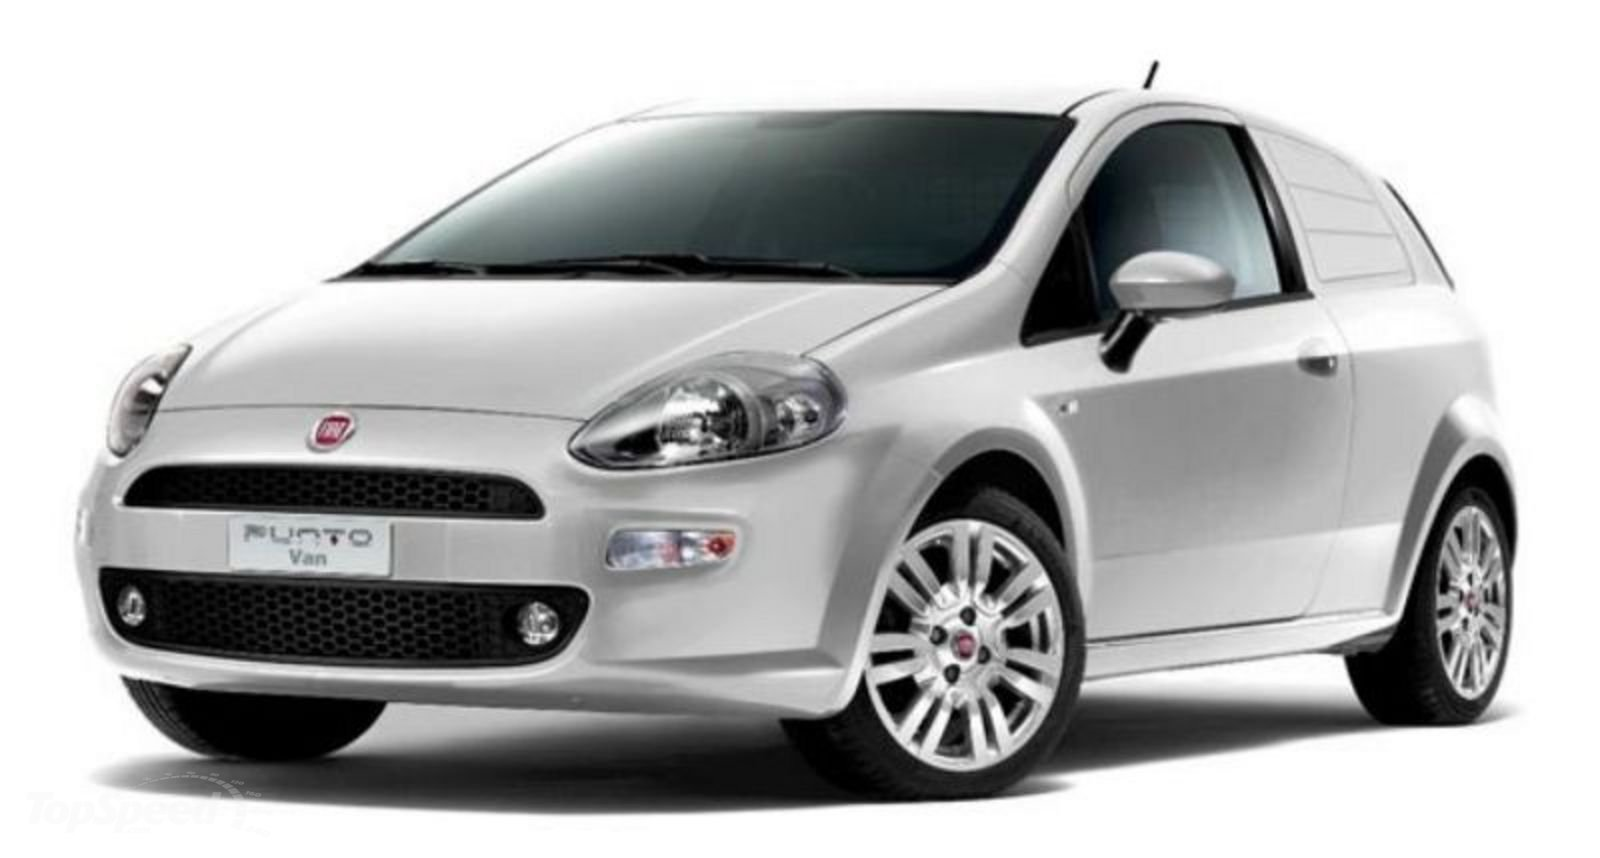 2008 fiat grande punto van review top speed. Black Bedroom Furniture Sets. Home Design Ideas